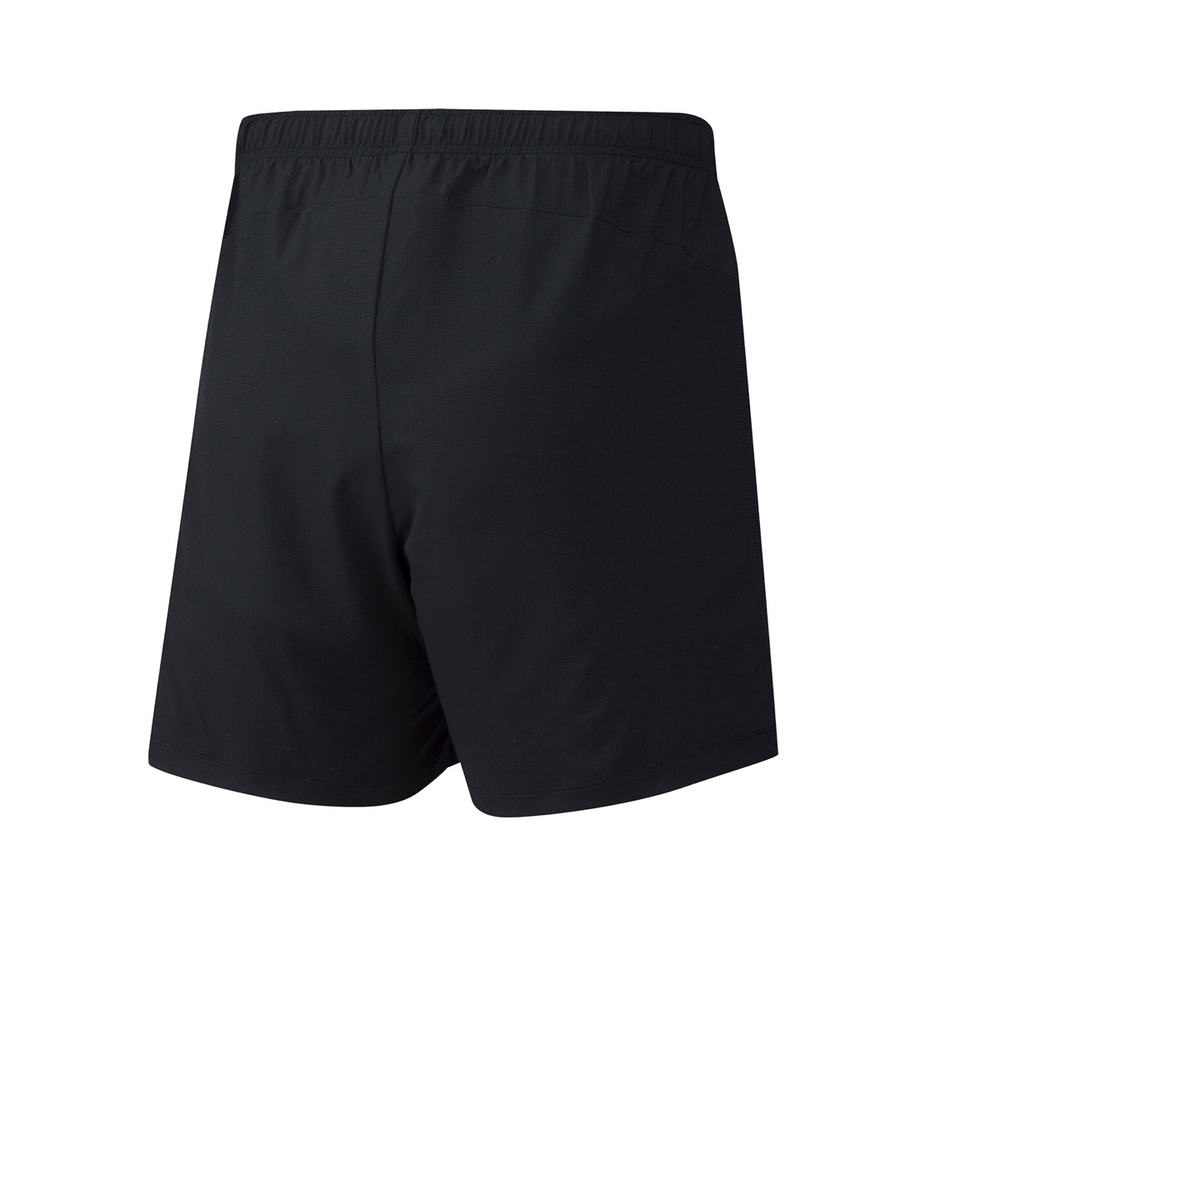 Mizuno Impulse 5.5 Short Mens